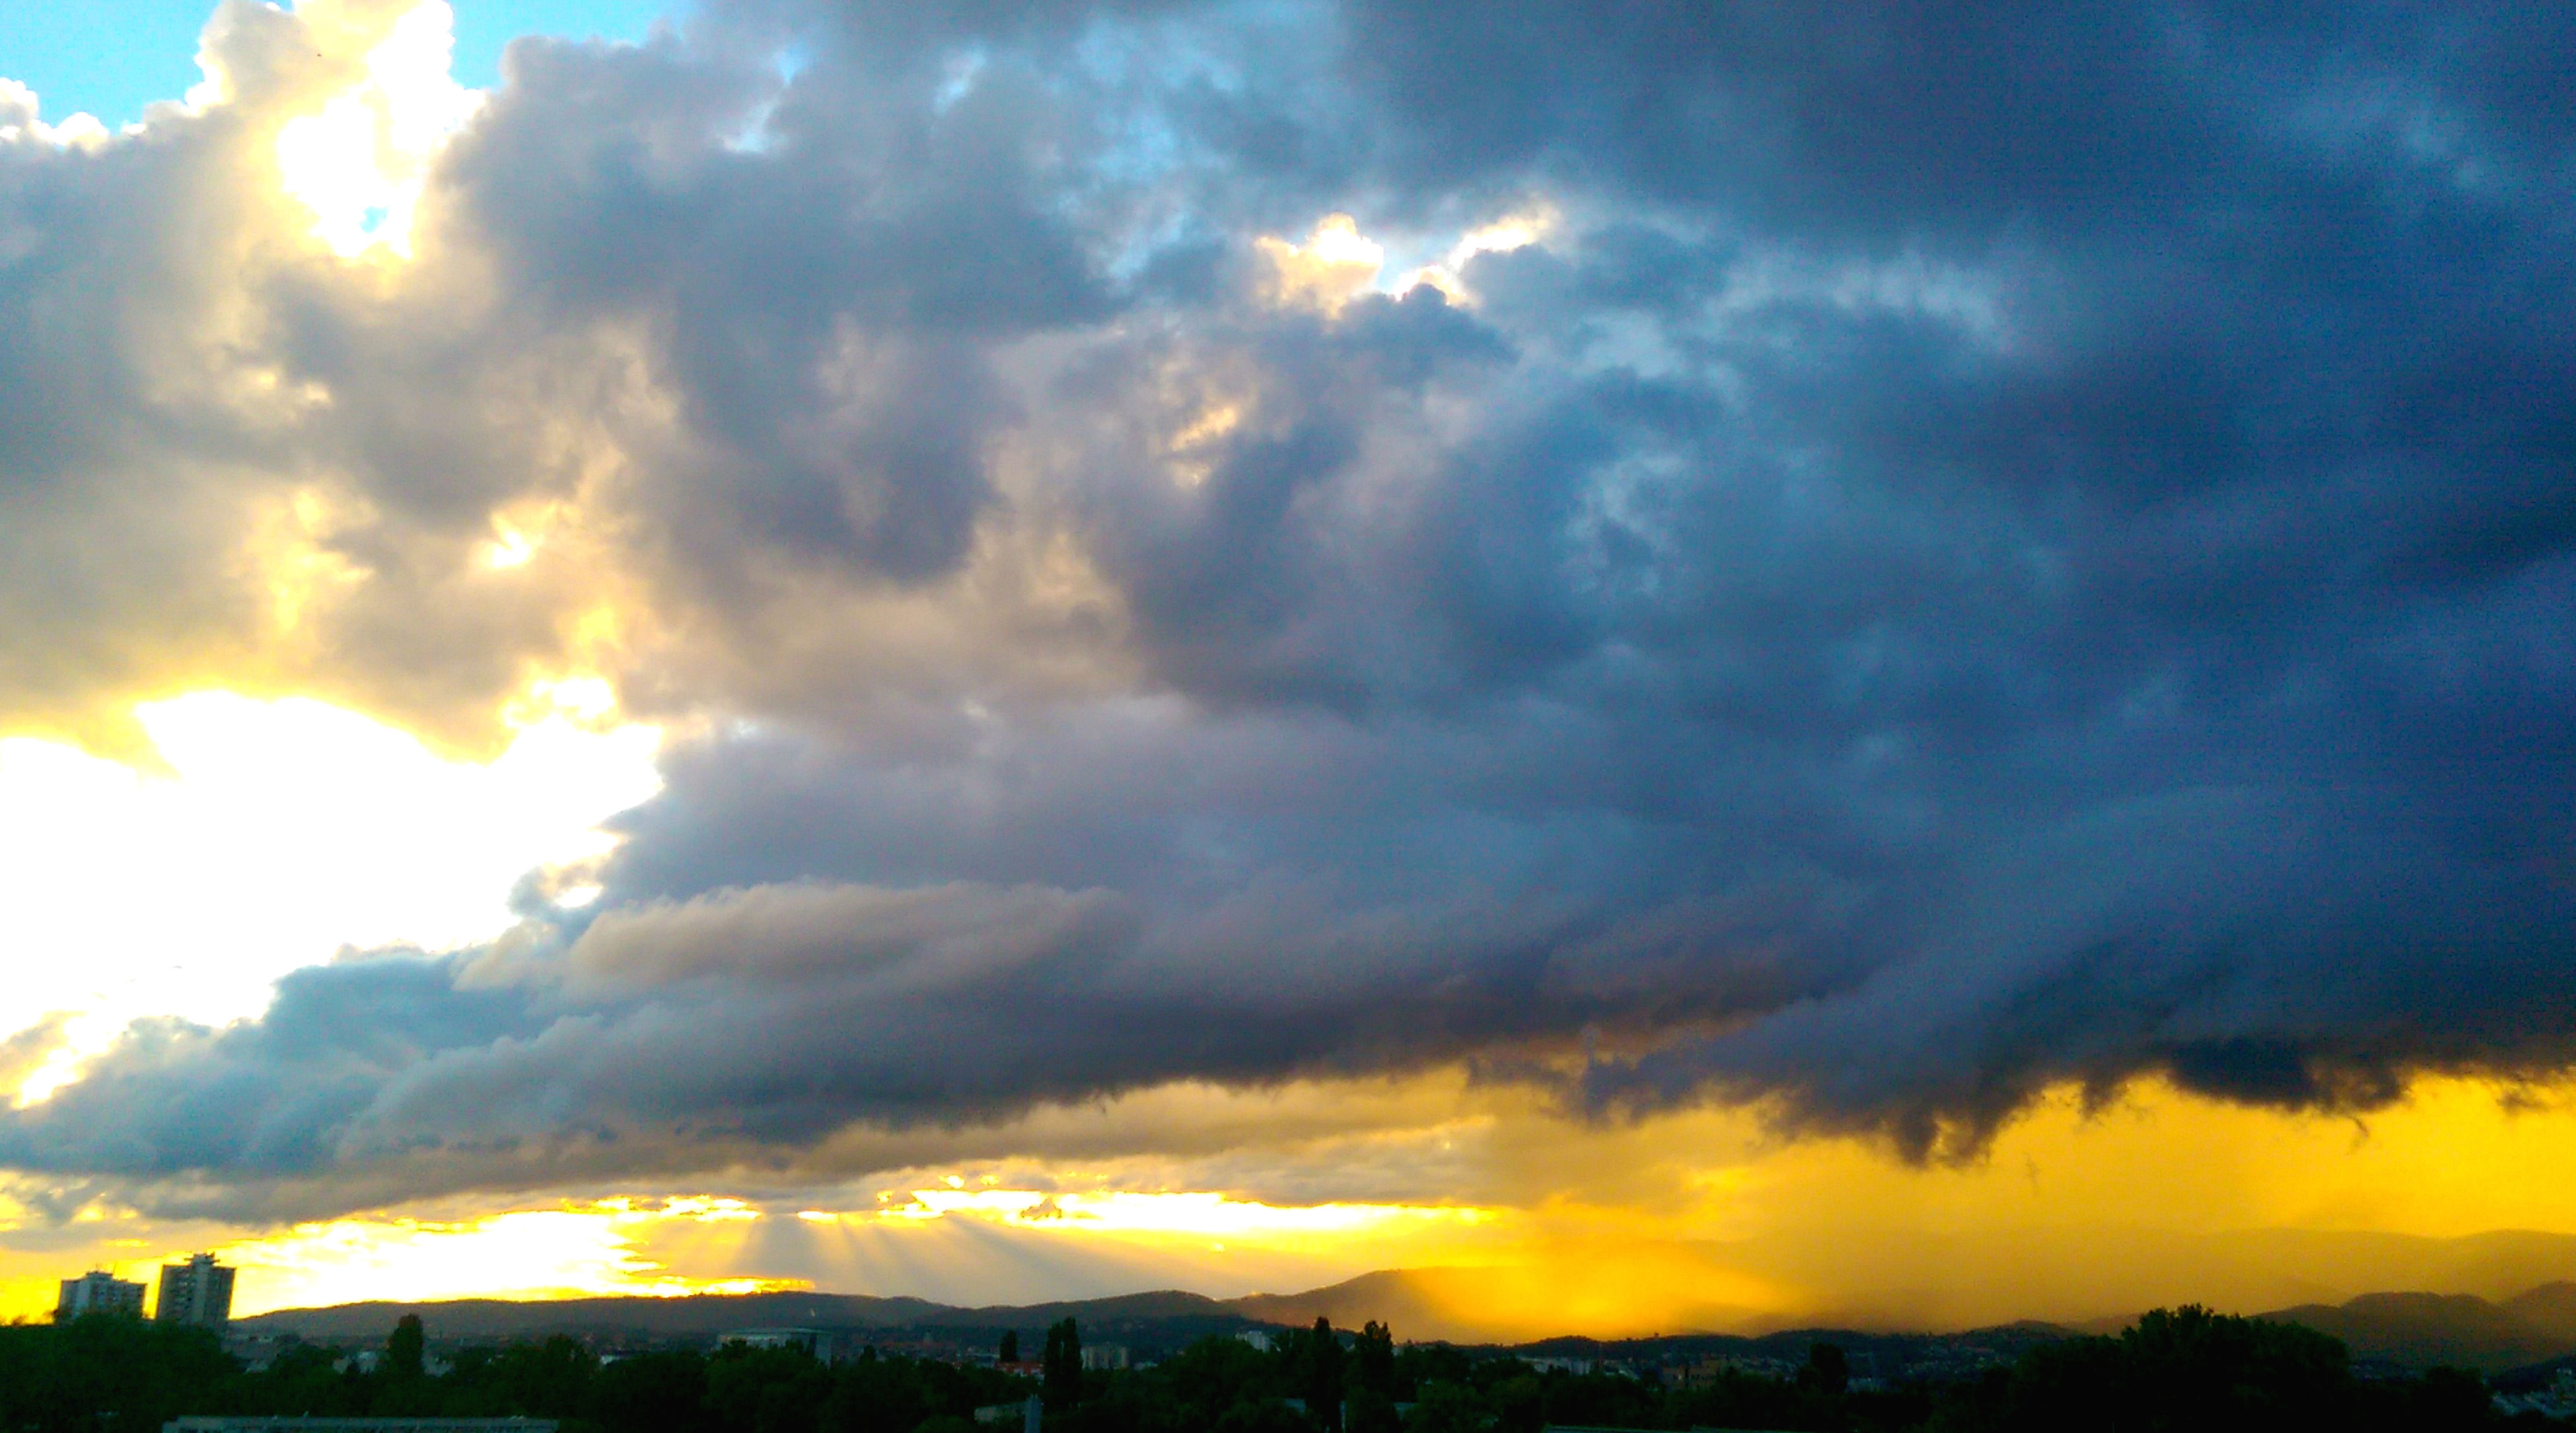 sunset, sky, cloud - sky, dramatic sky, orange color, scenics, beauty in nature, cloudy, silhouette, cloud, weather, tranquil scene, building exterior, nature, moody sky, tranquility, atmospheric mood, cloudscape, idyllic, overcast